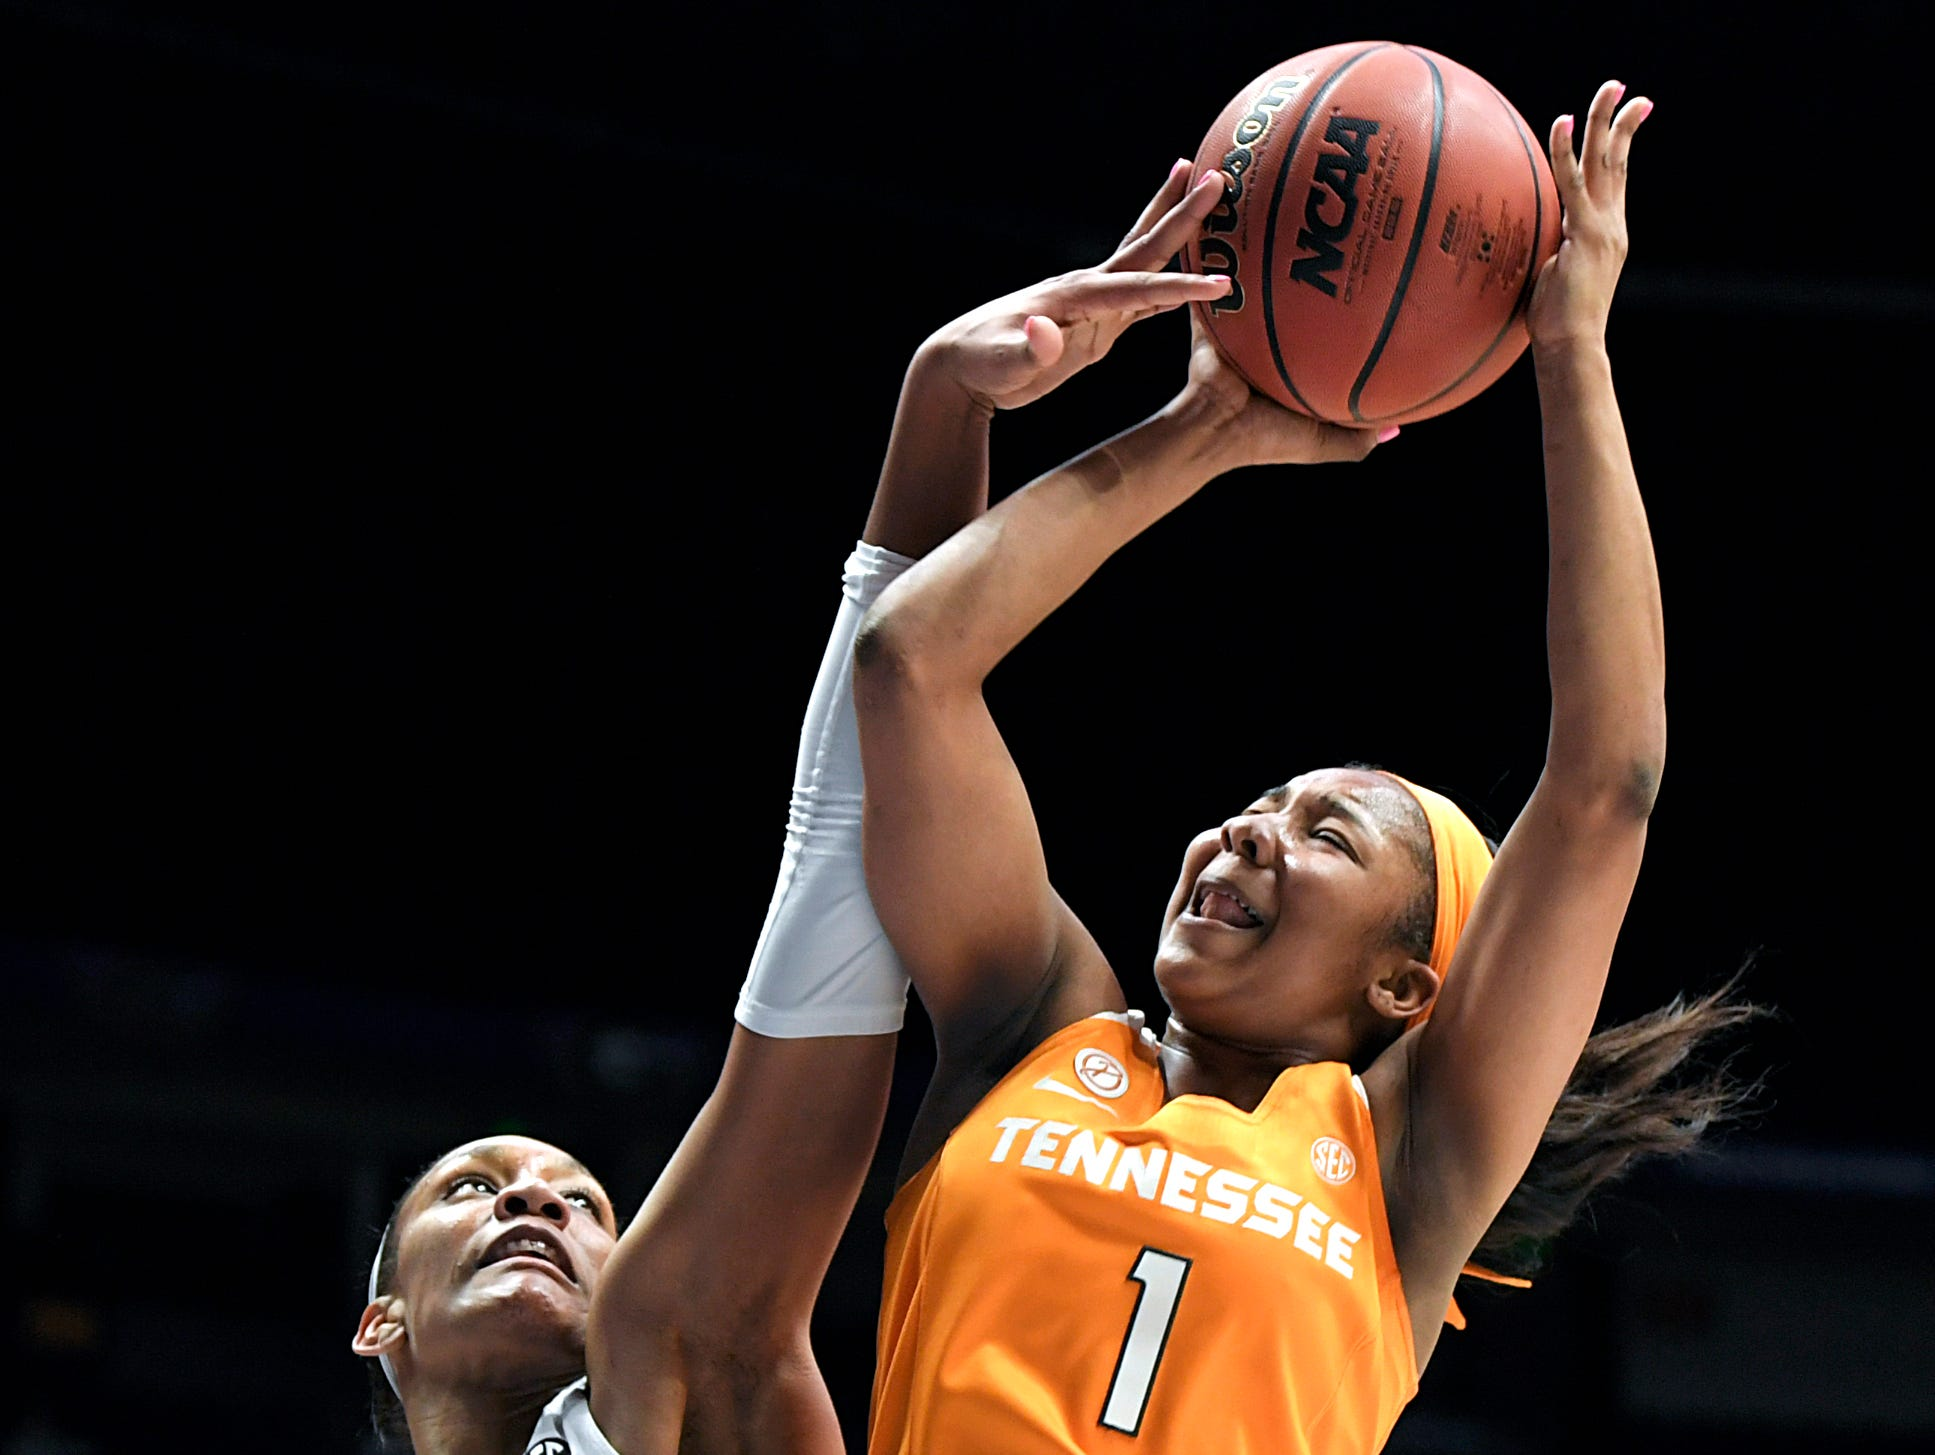 Tennessee Lady Volunteers guard Anastasia Hayes (1) get fouled by South Carolina Gamecocks forward A'ja Wilson (22) during the quarterfinals at the 2018 SEC Women's Basketball Tournament at Bridgestone Arena in Nashville on Thursday, March 2, 2018.